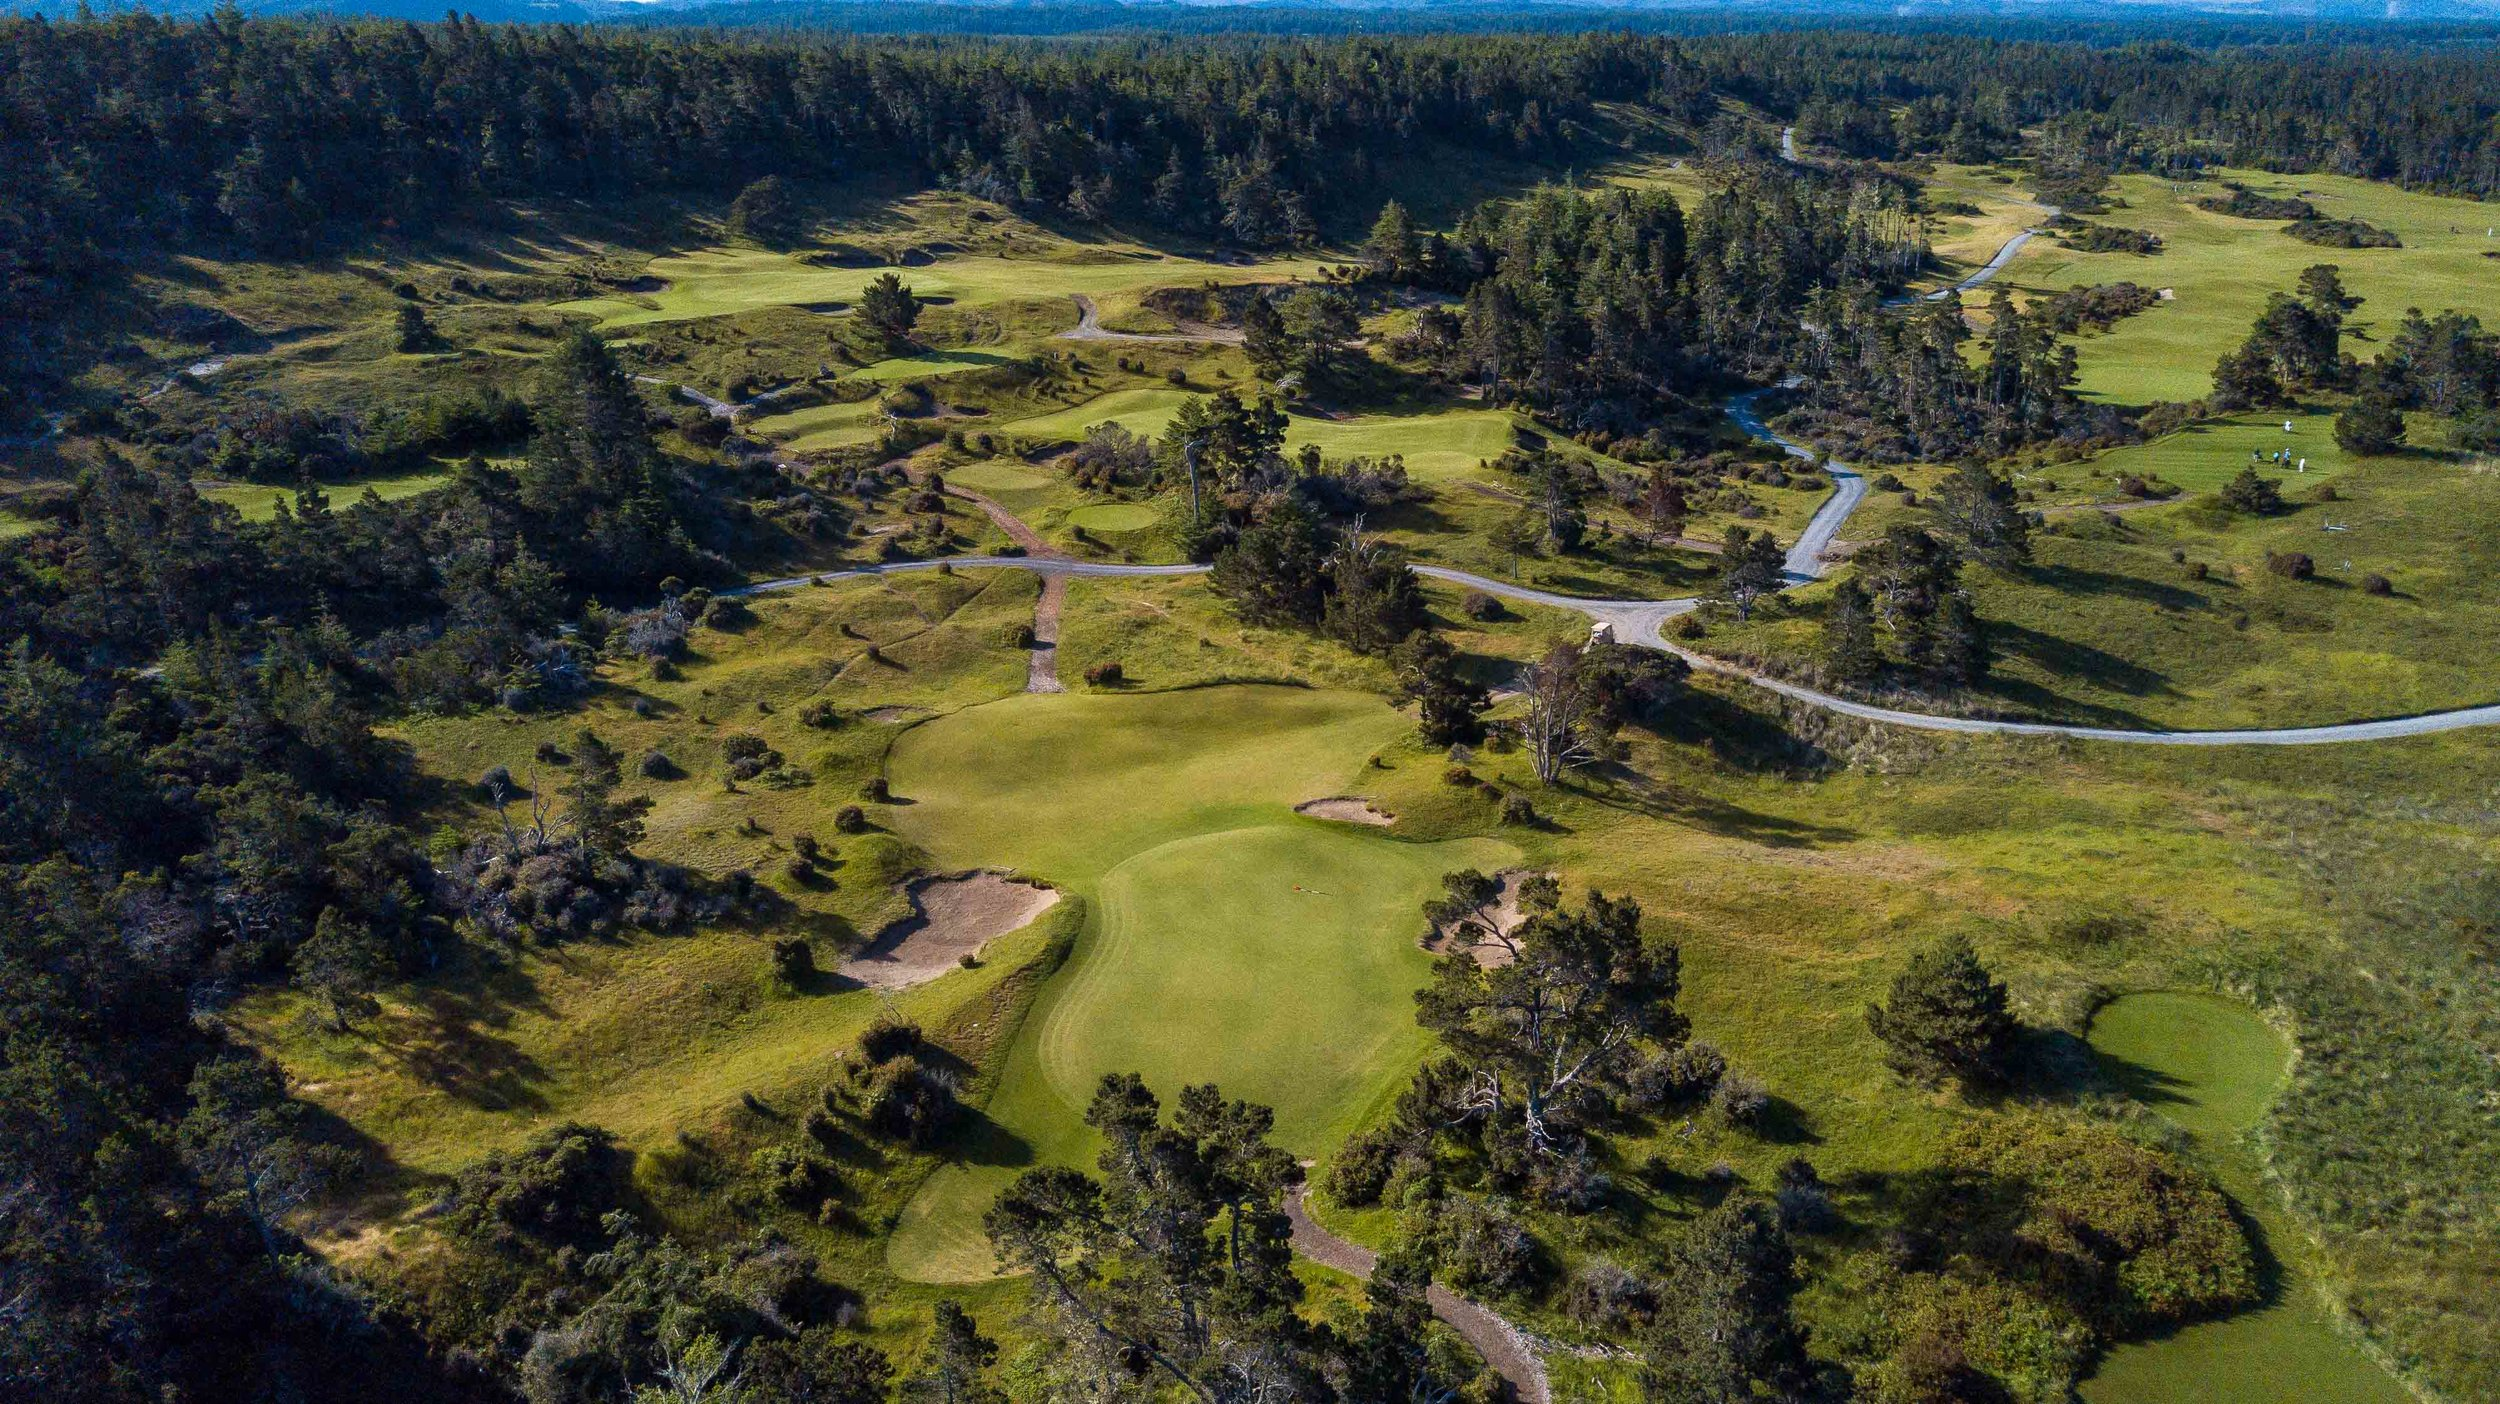 In one of our team's first round highlights, we made a 4 footer for par on the relatively easy 17th hole at Bandon Trails.  The highlight reel was sparse, the aerial footage was plentiful.